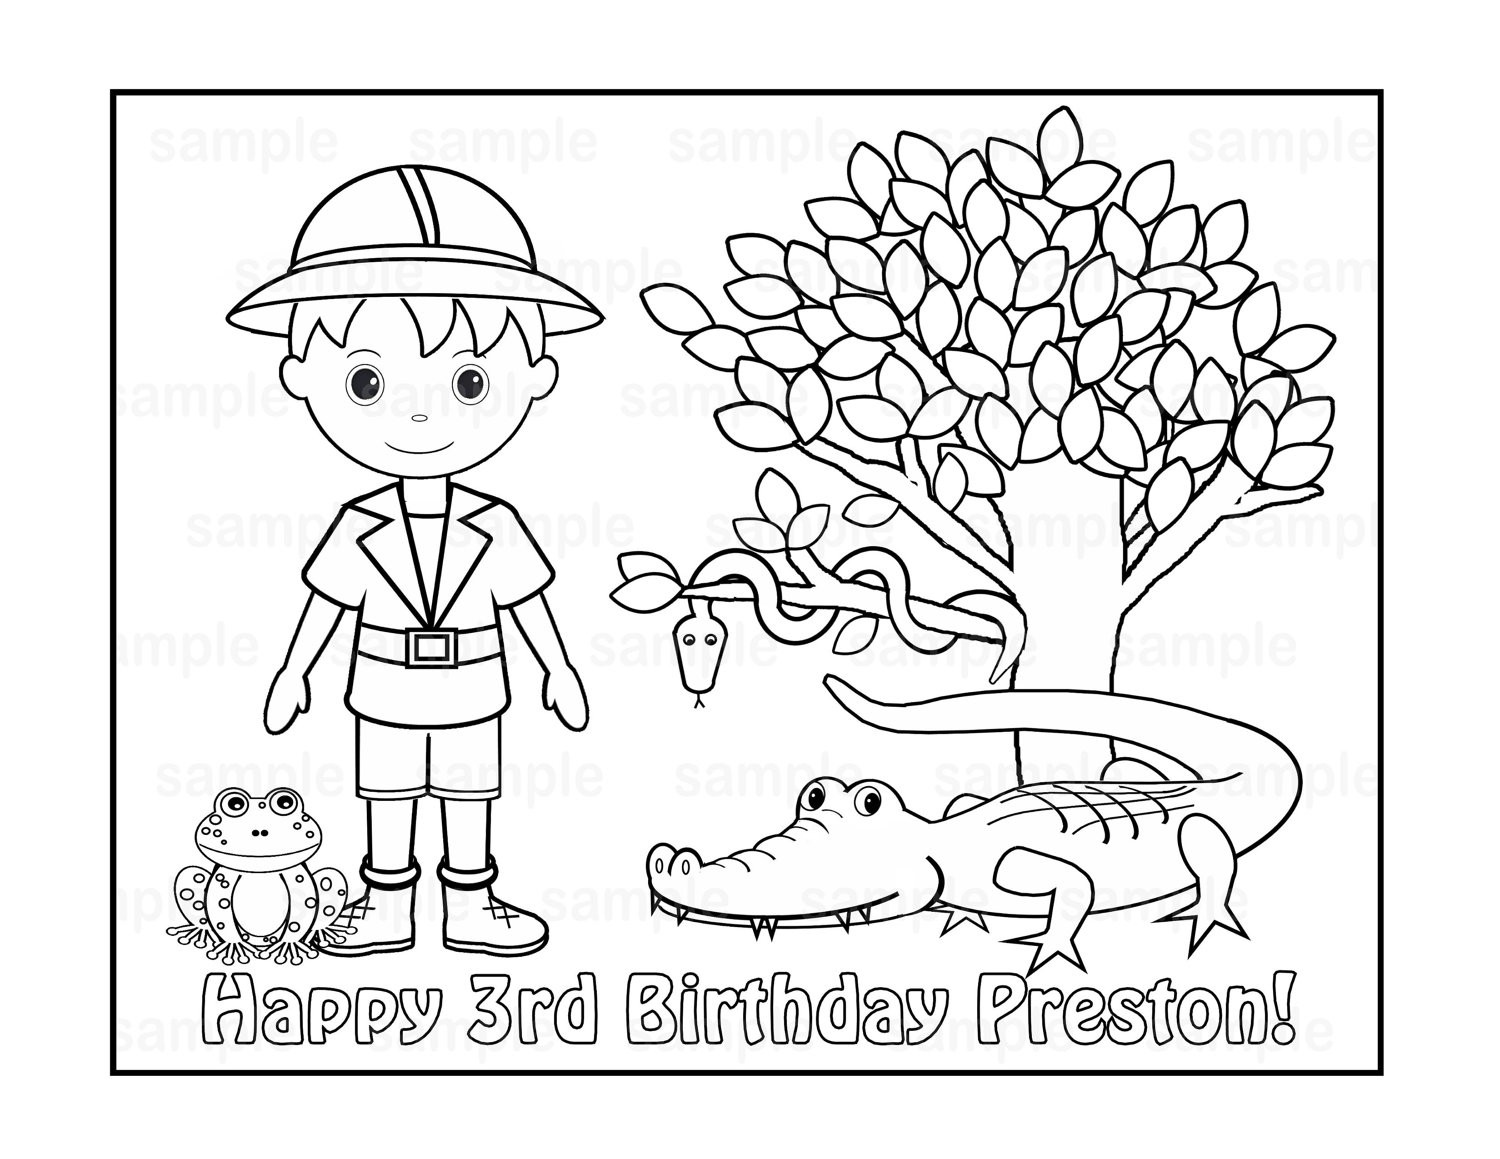 1500x1159 New Custom Coloring Pages From Photos Free Personalized Printable